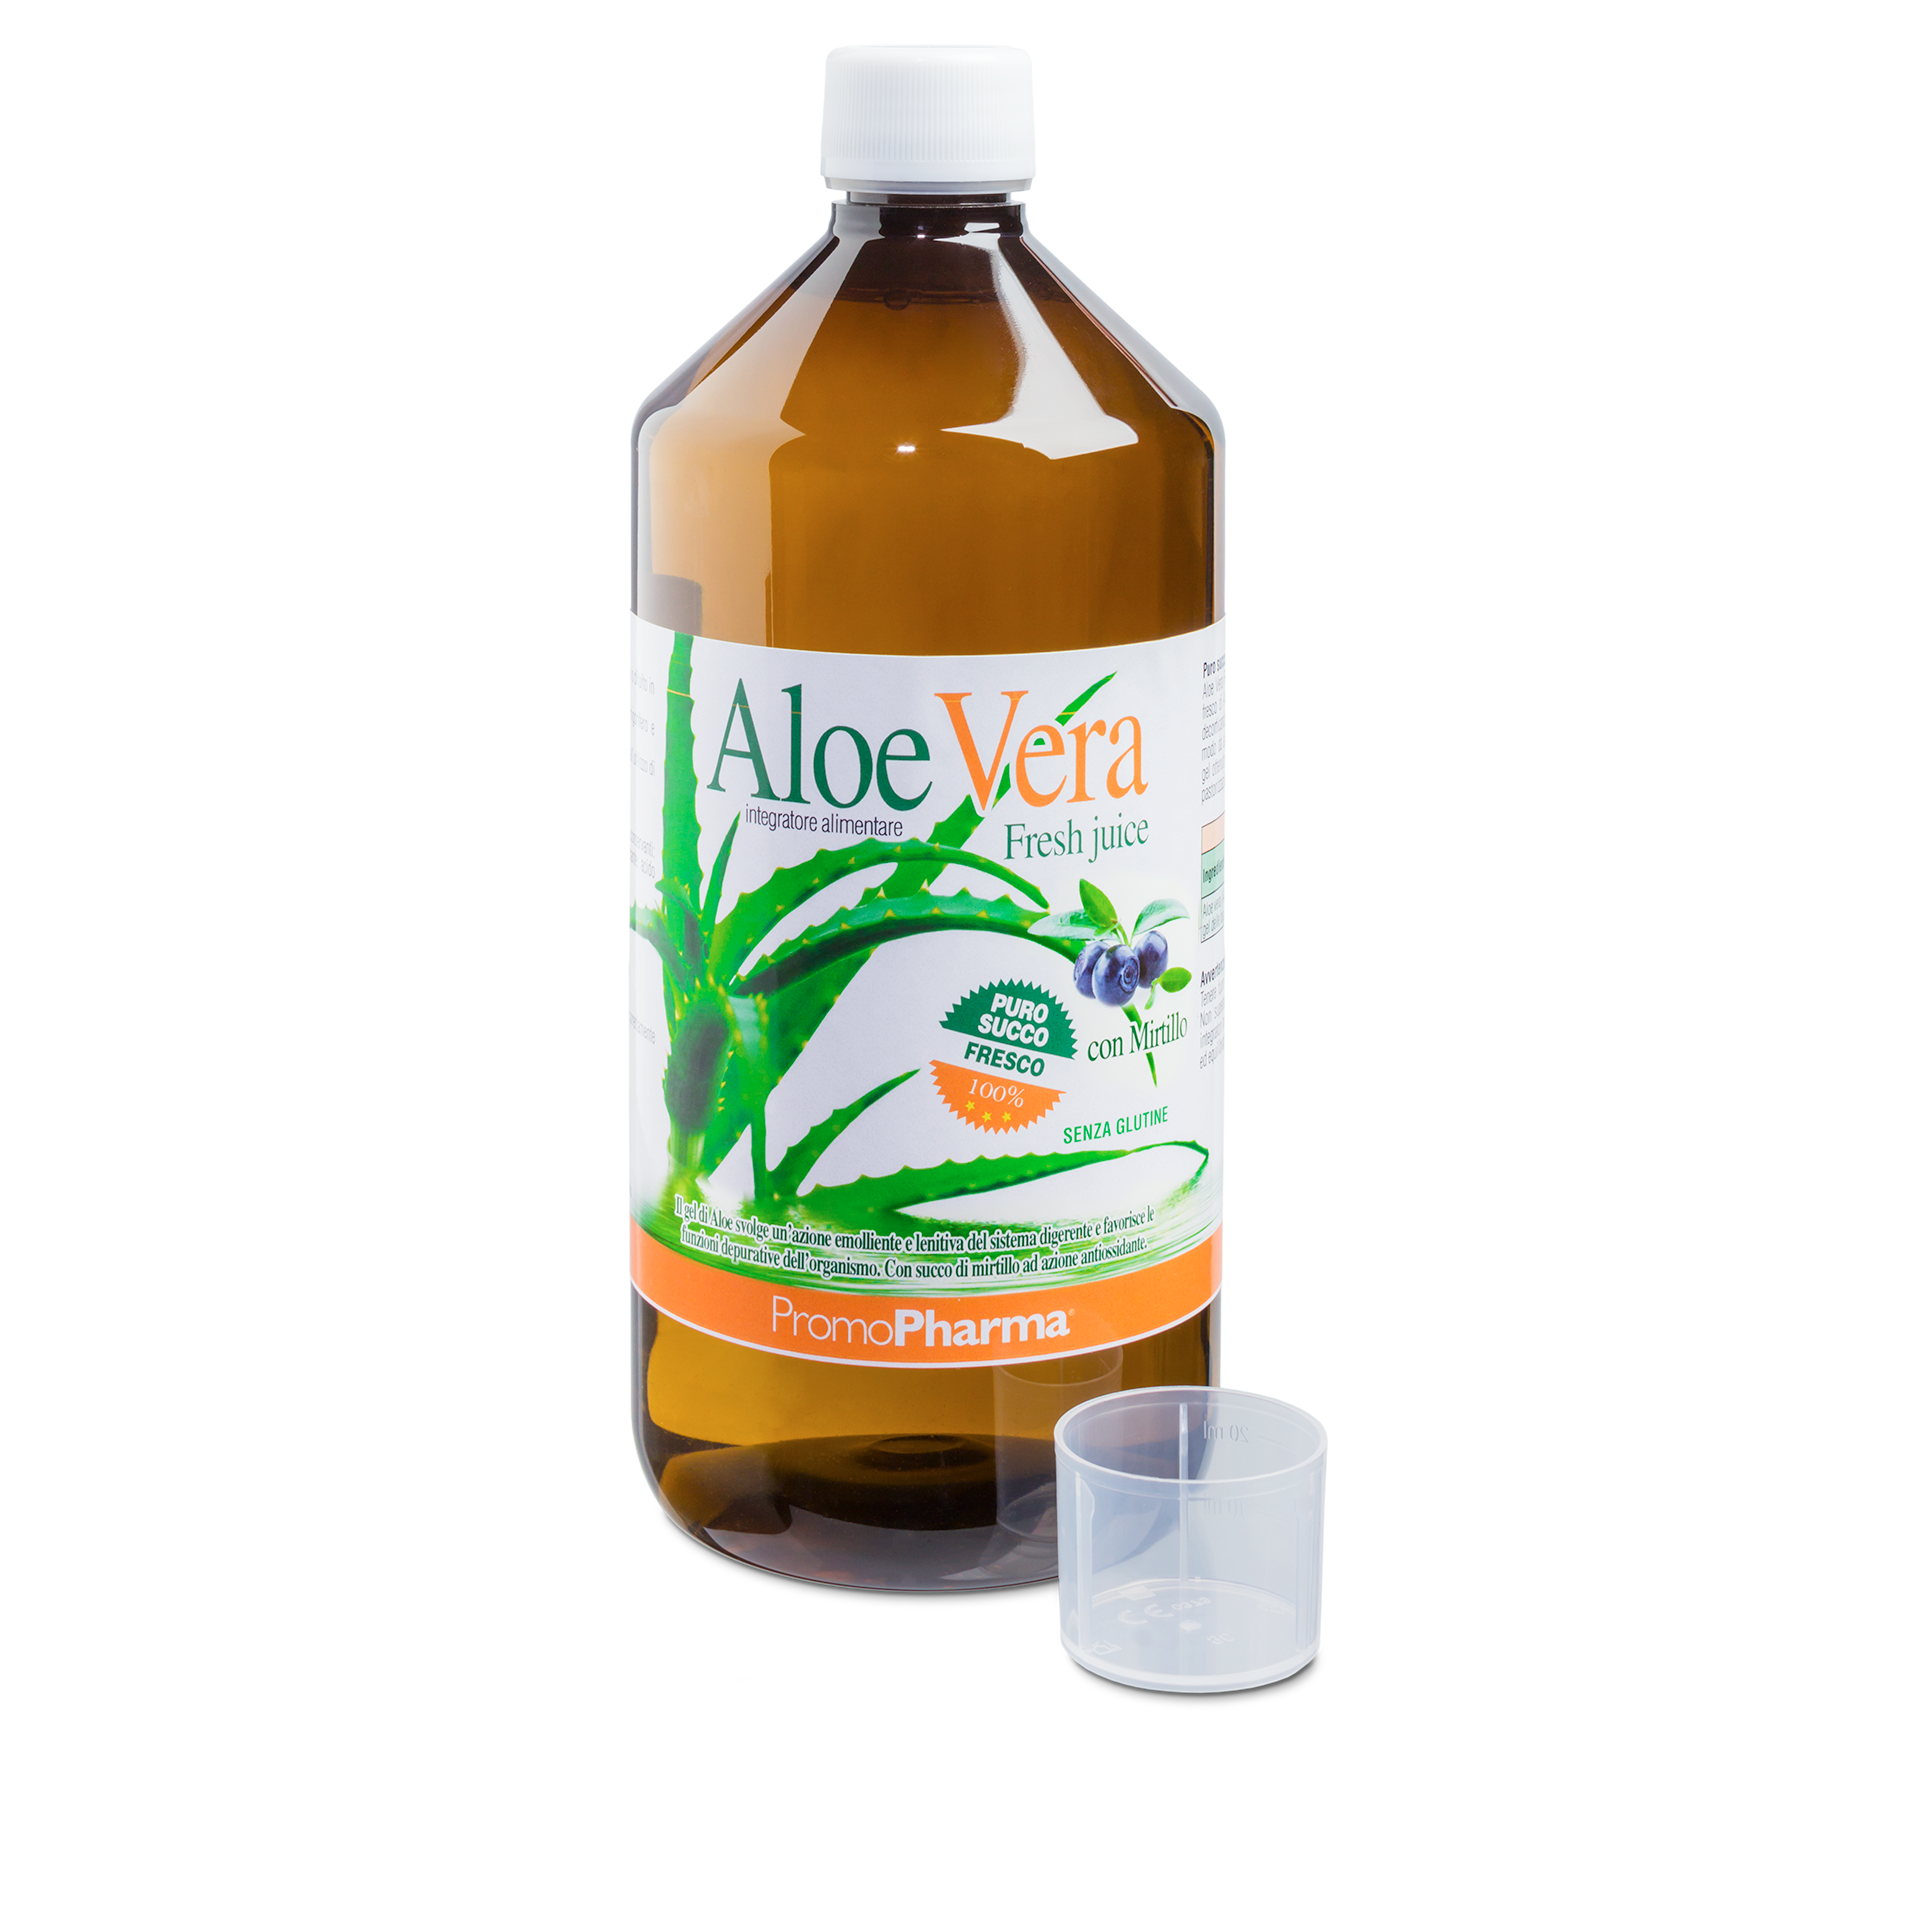 Aloe Vera fresh juice mirtillo